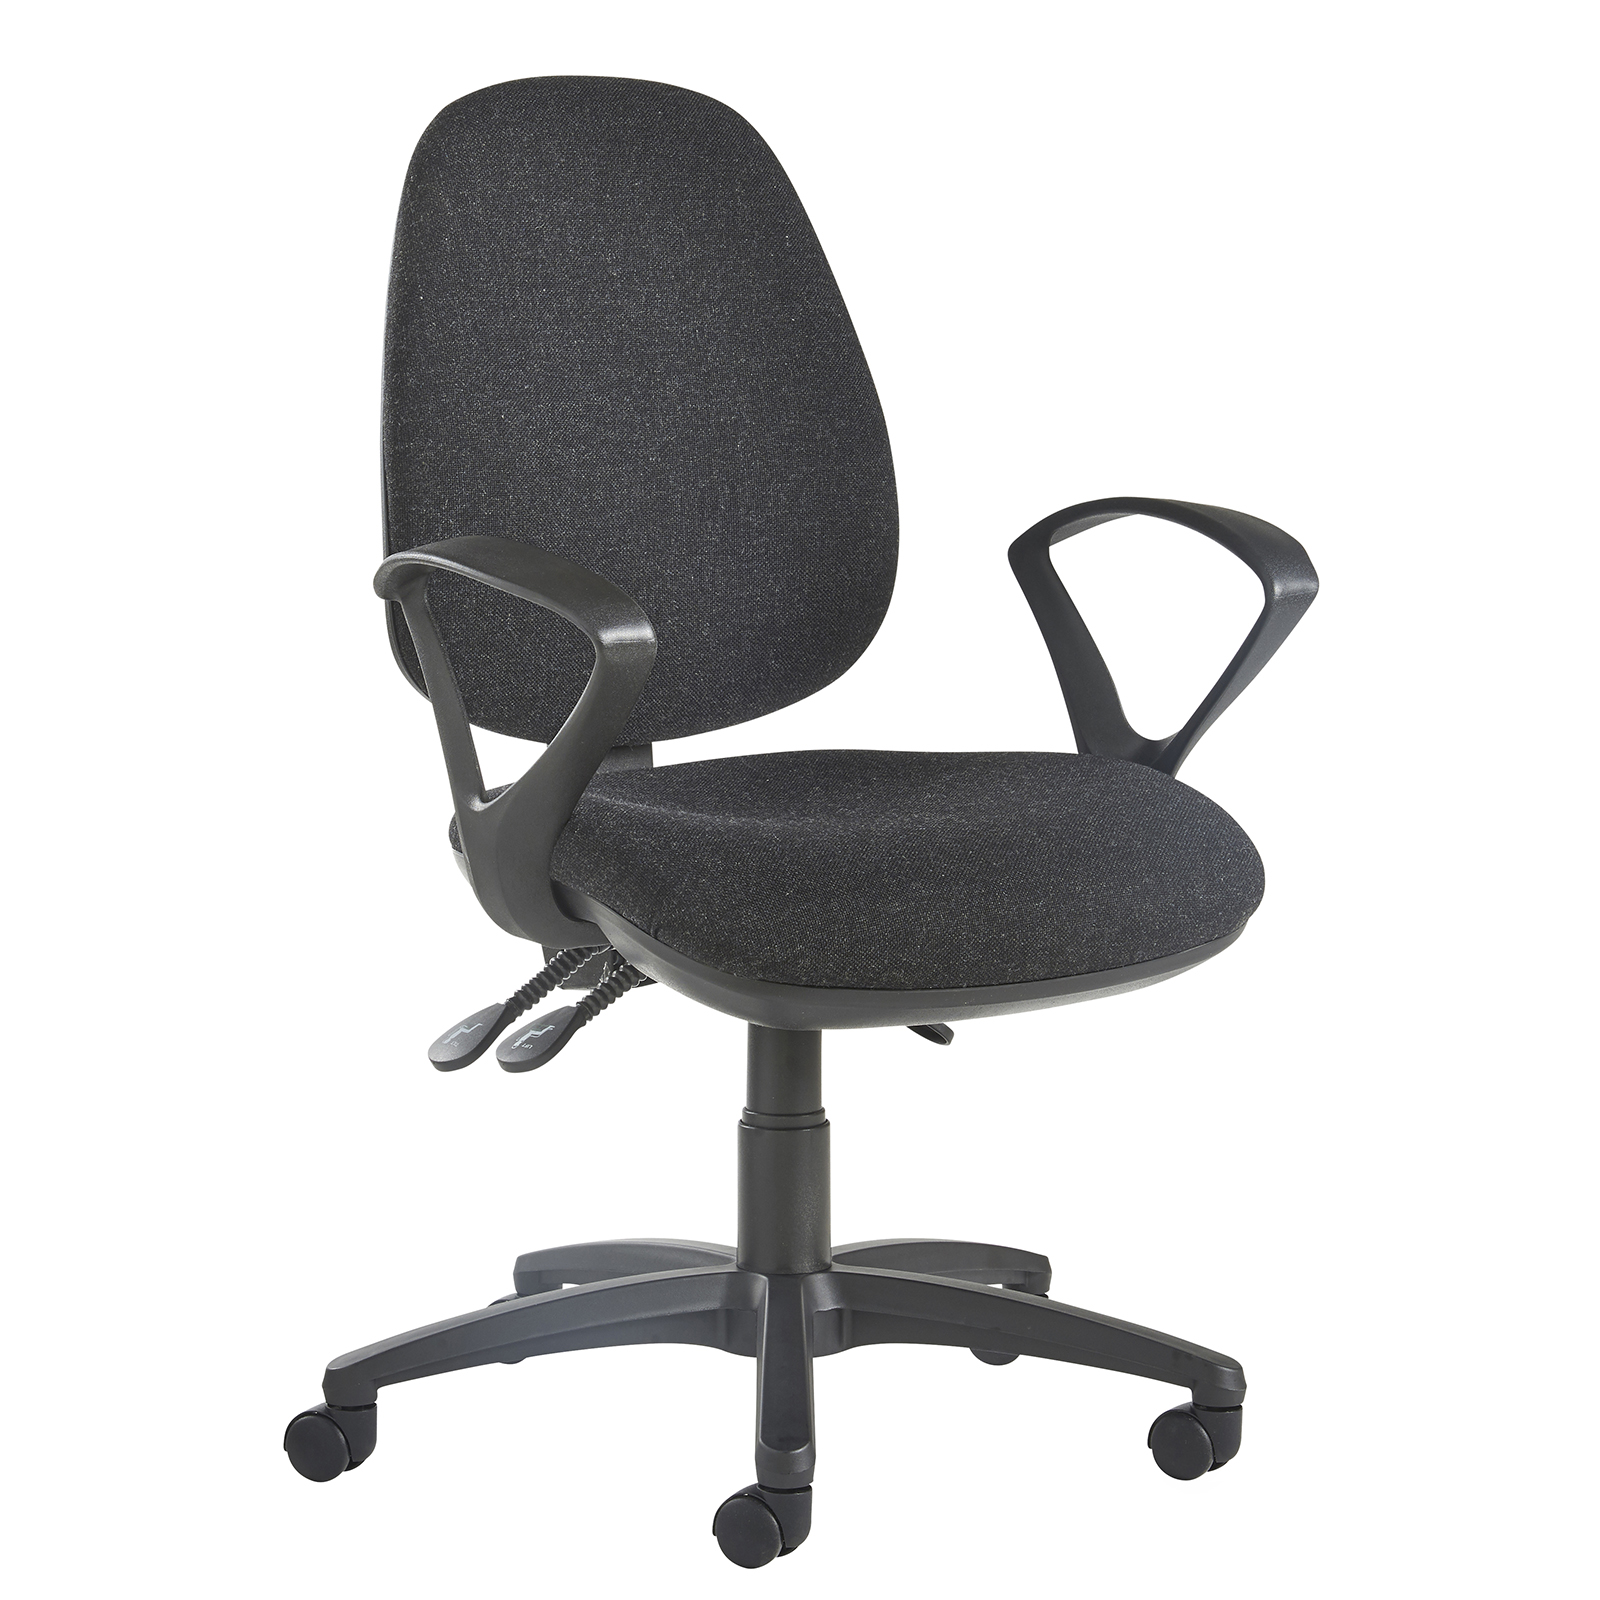 Jota high back operator chair with fixed arms - charcoal